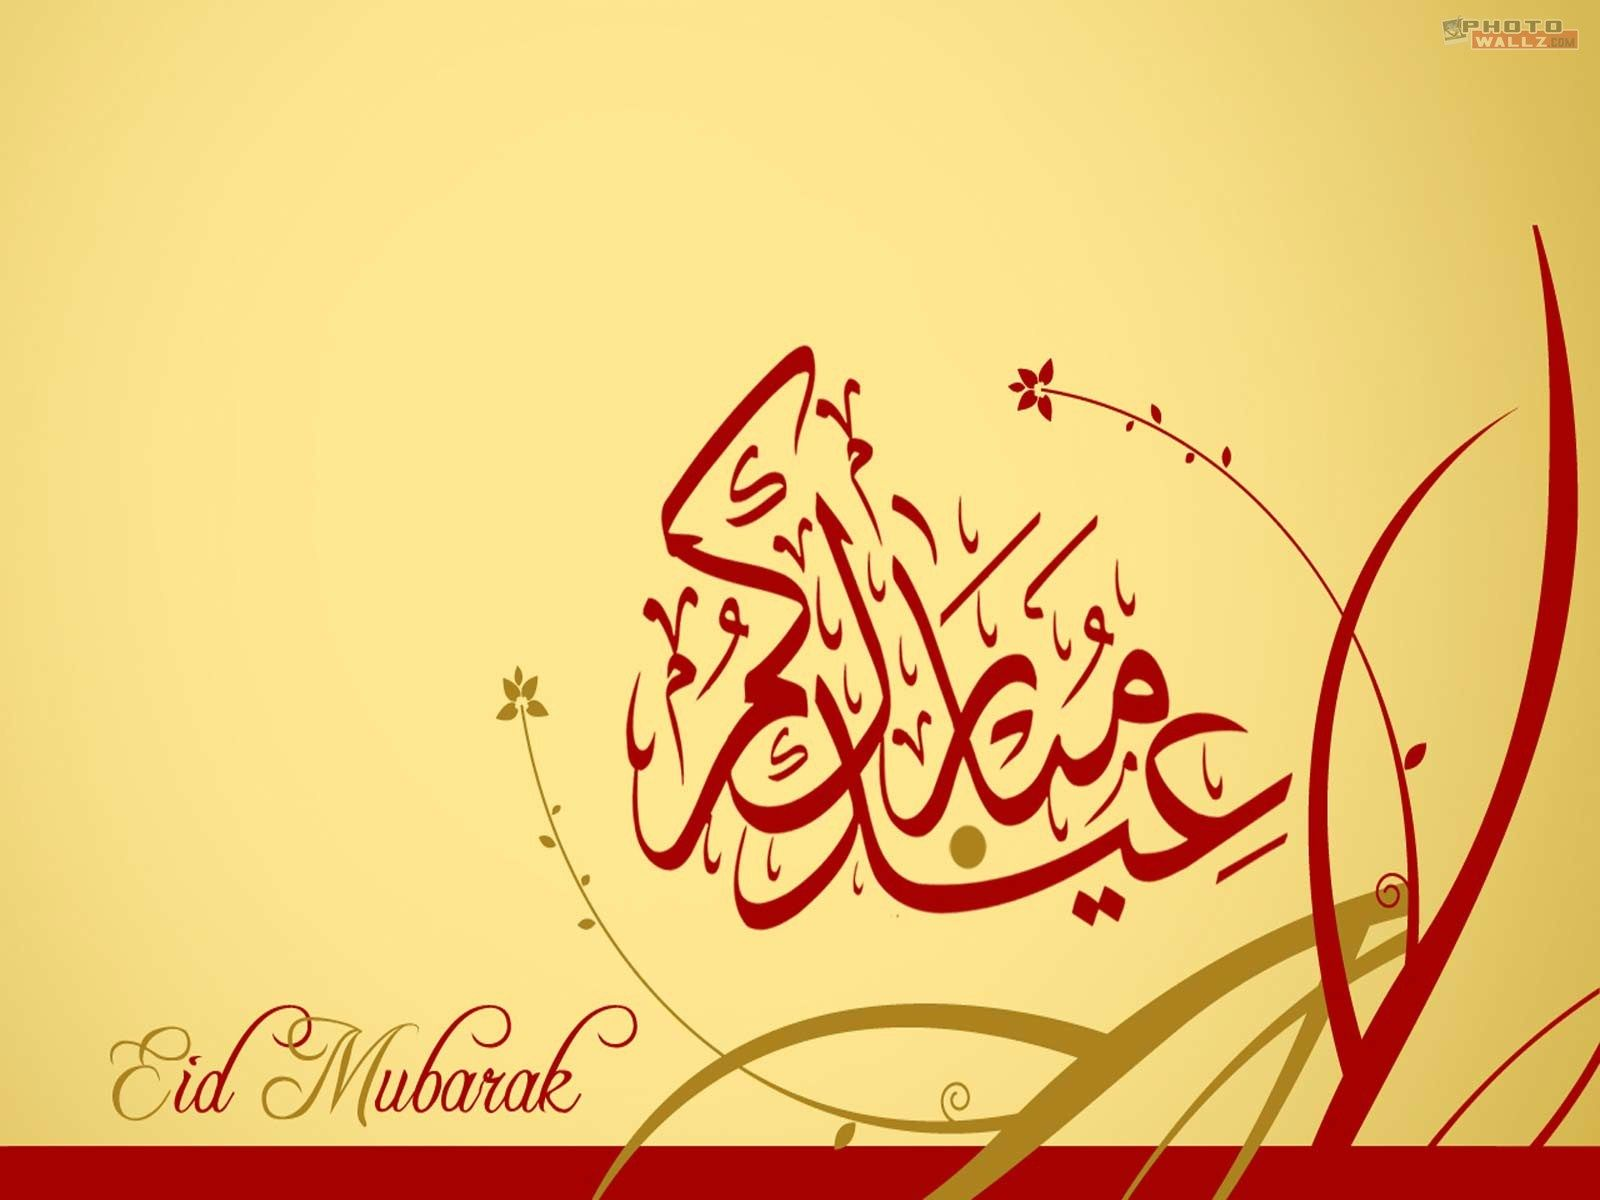 Eid mubarak wallpaper in arabic all bout ramadhan eid mubarak eid mubarak wallpaper in arabic kristyandbryce Image collections